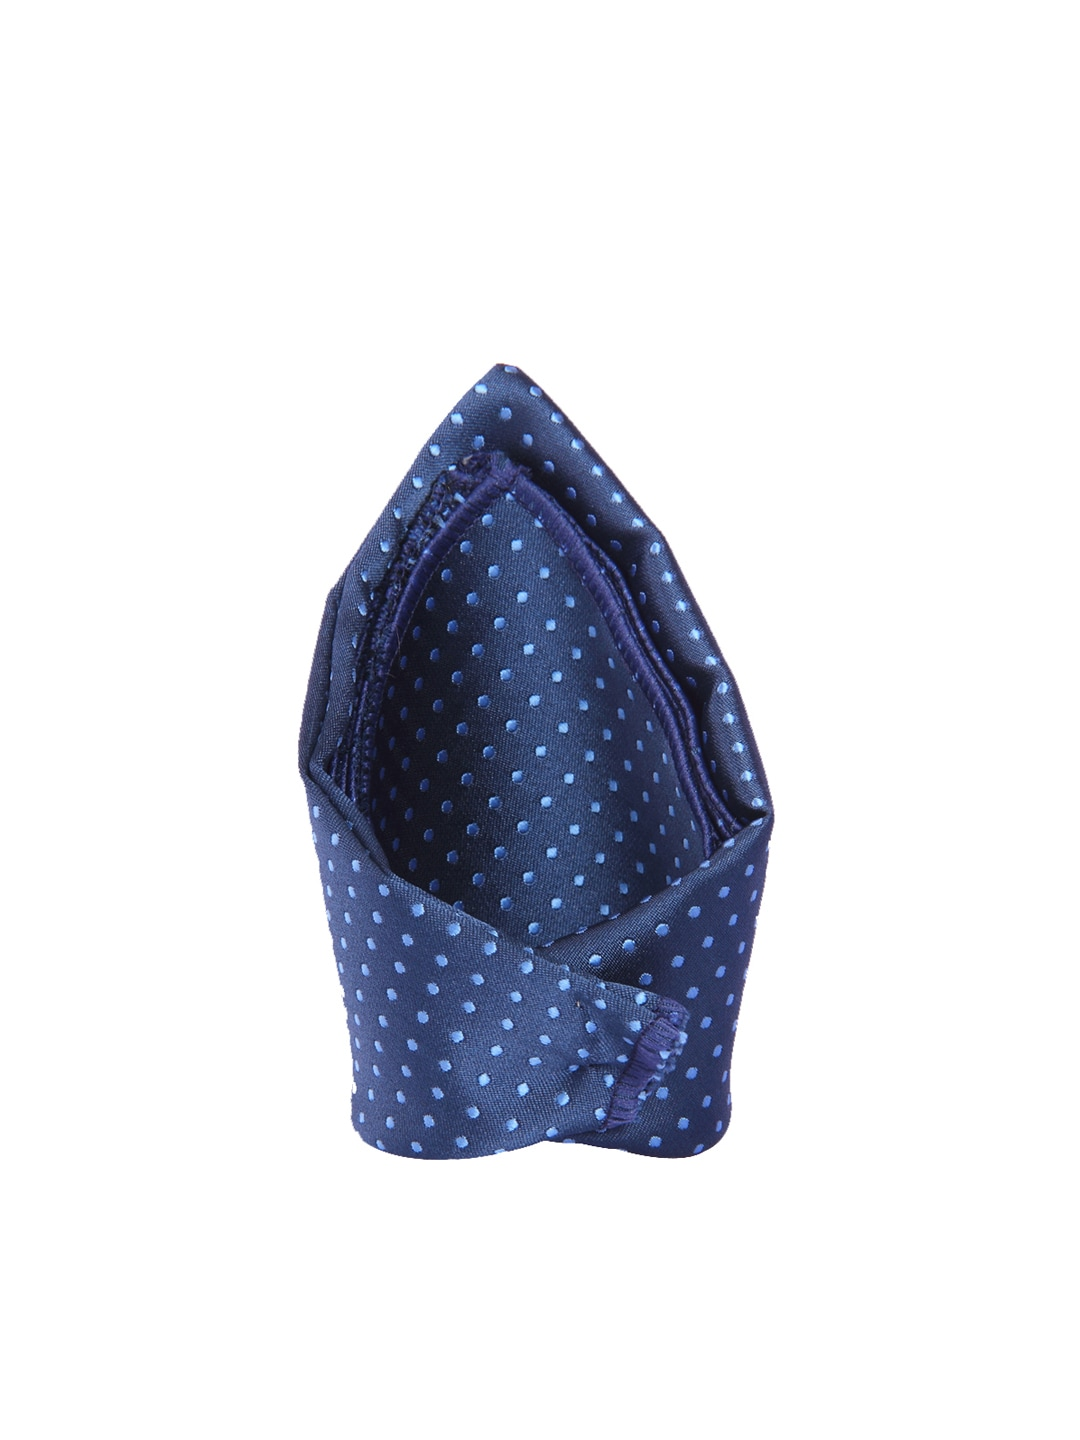 19be1e219b8c Tossido Pocket Squares - Buy Tossido Pocket Squares online in India